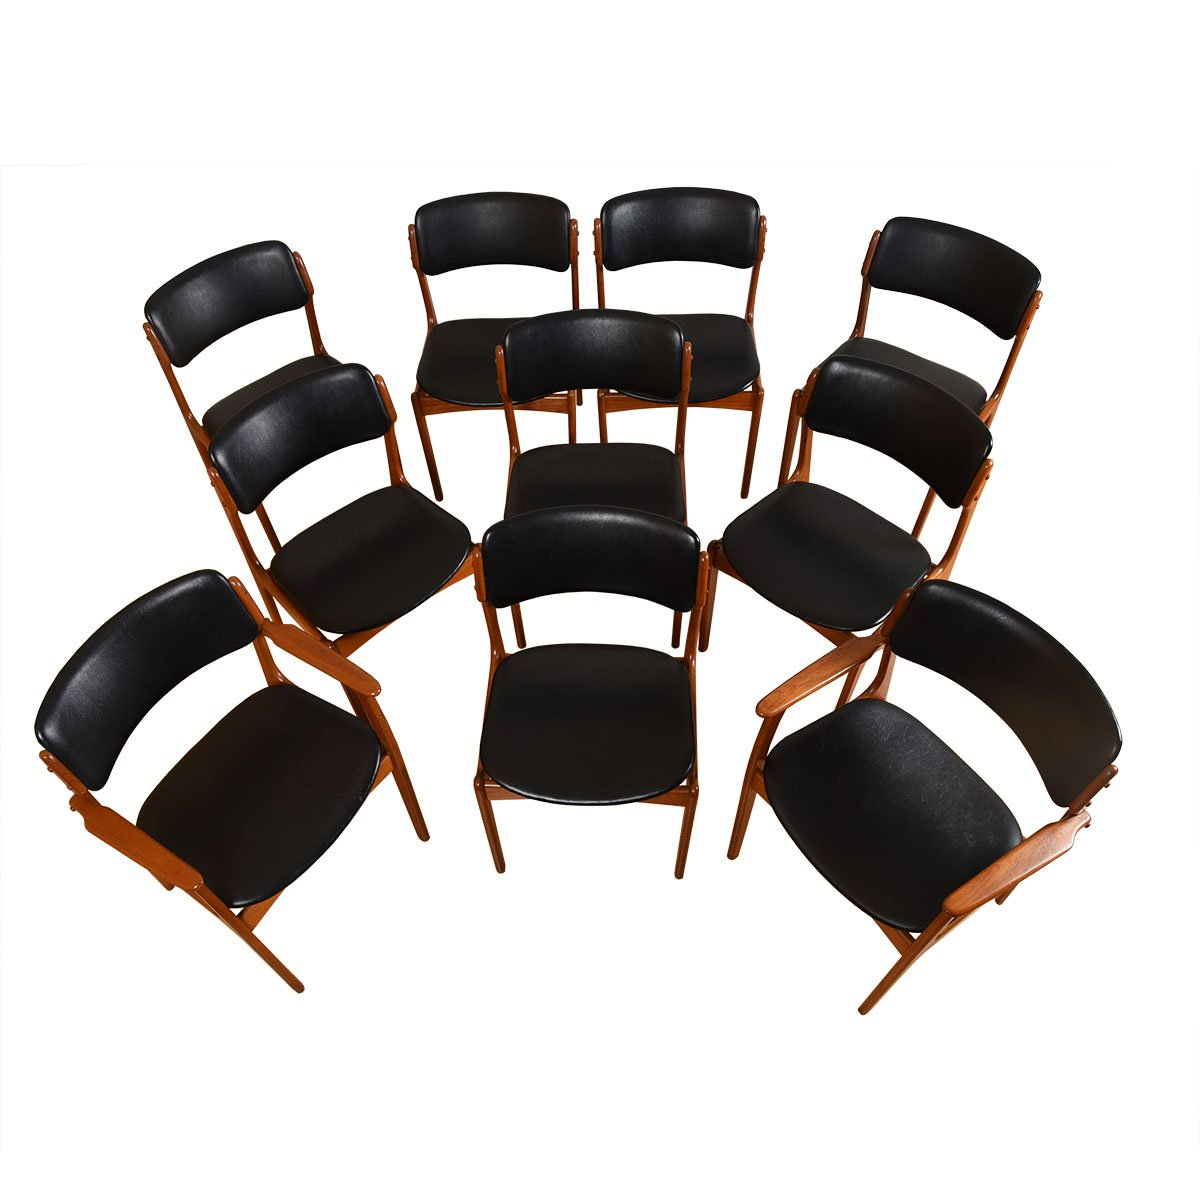 Set of 10 (2 Arm + 8 Side) Danish Teak Dining Chairs by Erik Buch